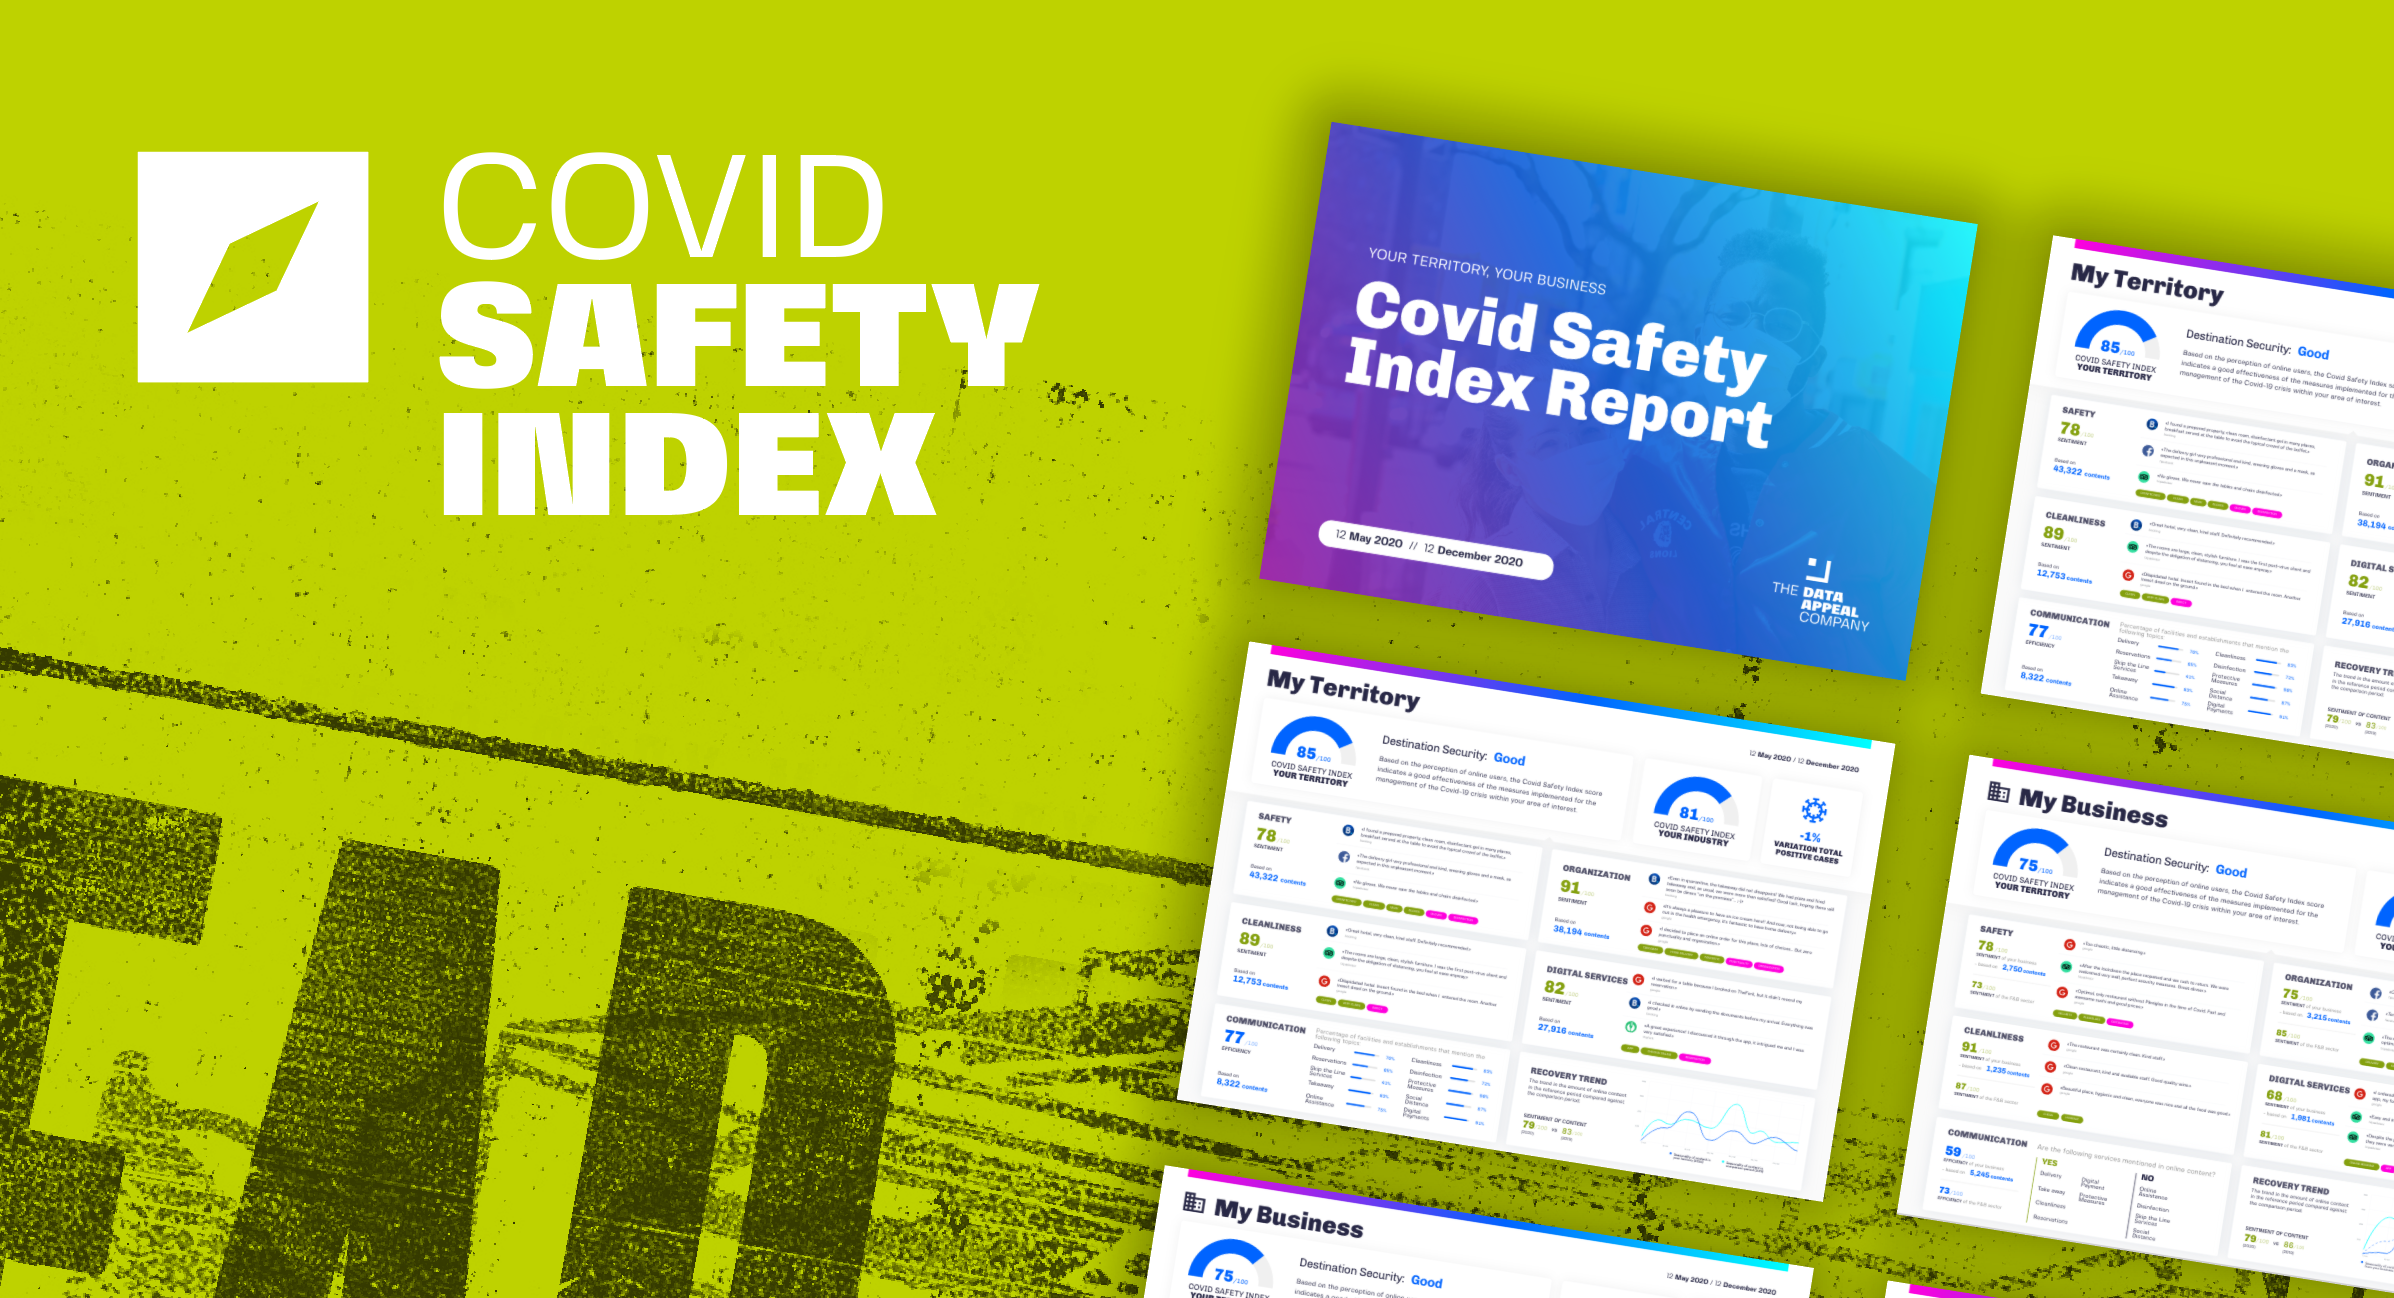 The Covid Safety Index: Navigating through uncertainty